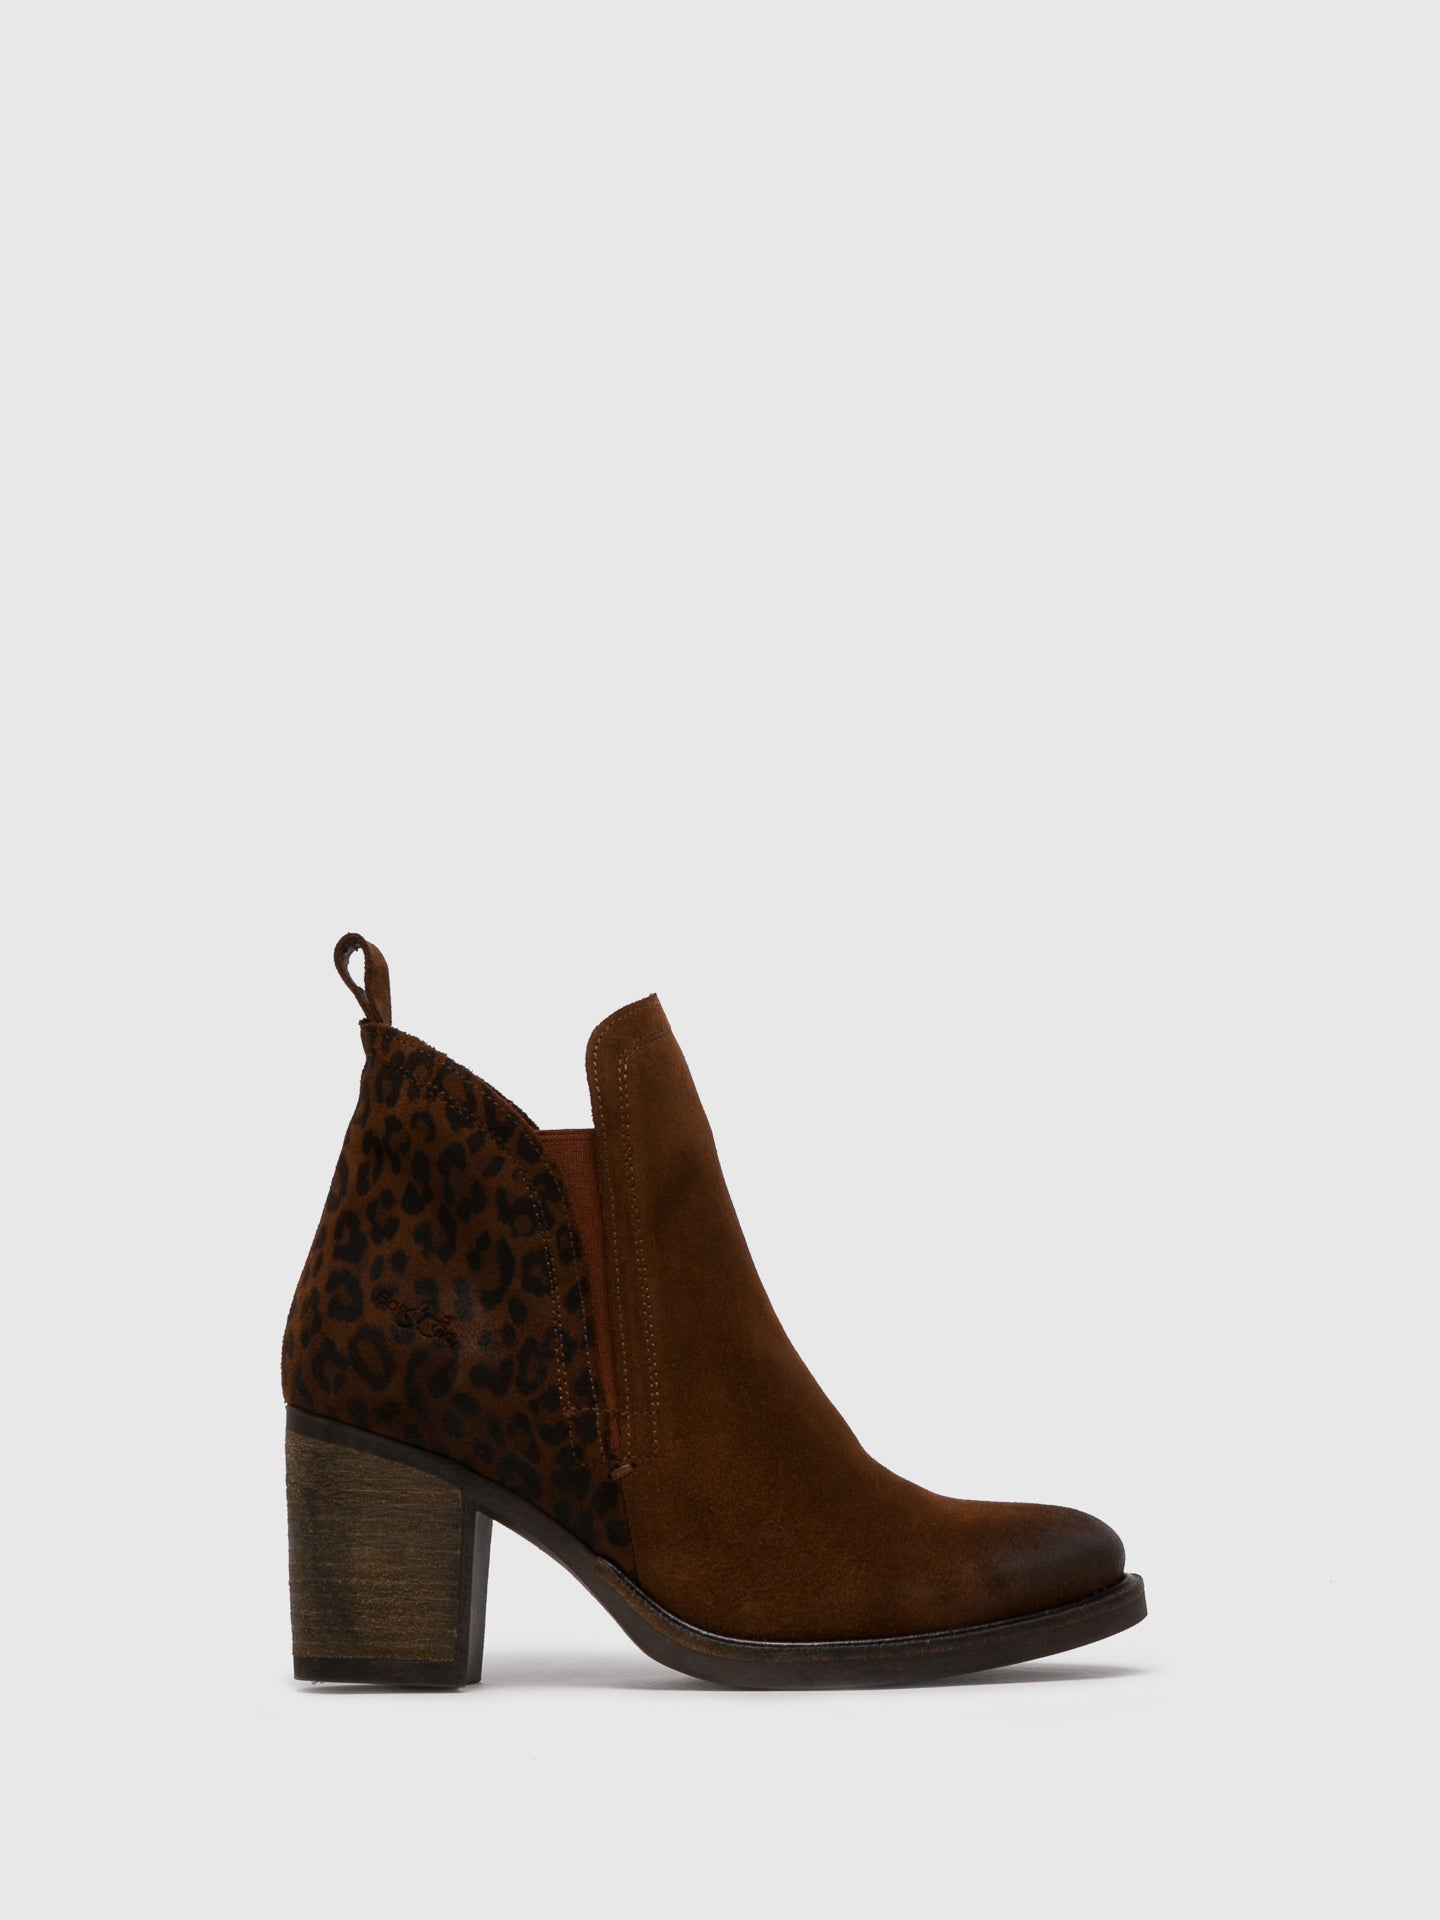 Bos&Co Camel Round Toe Ankle Boots